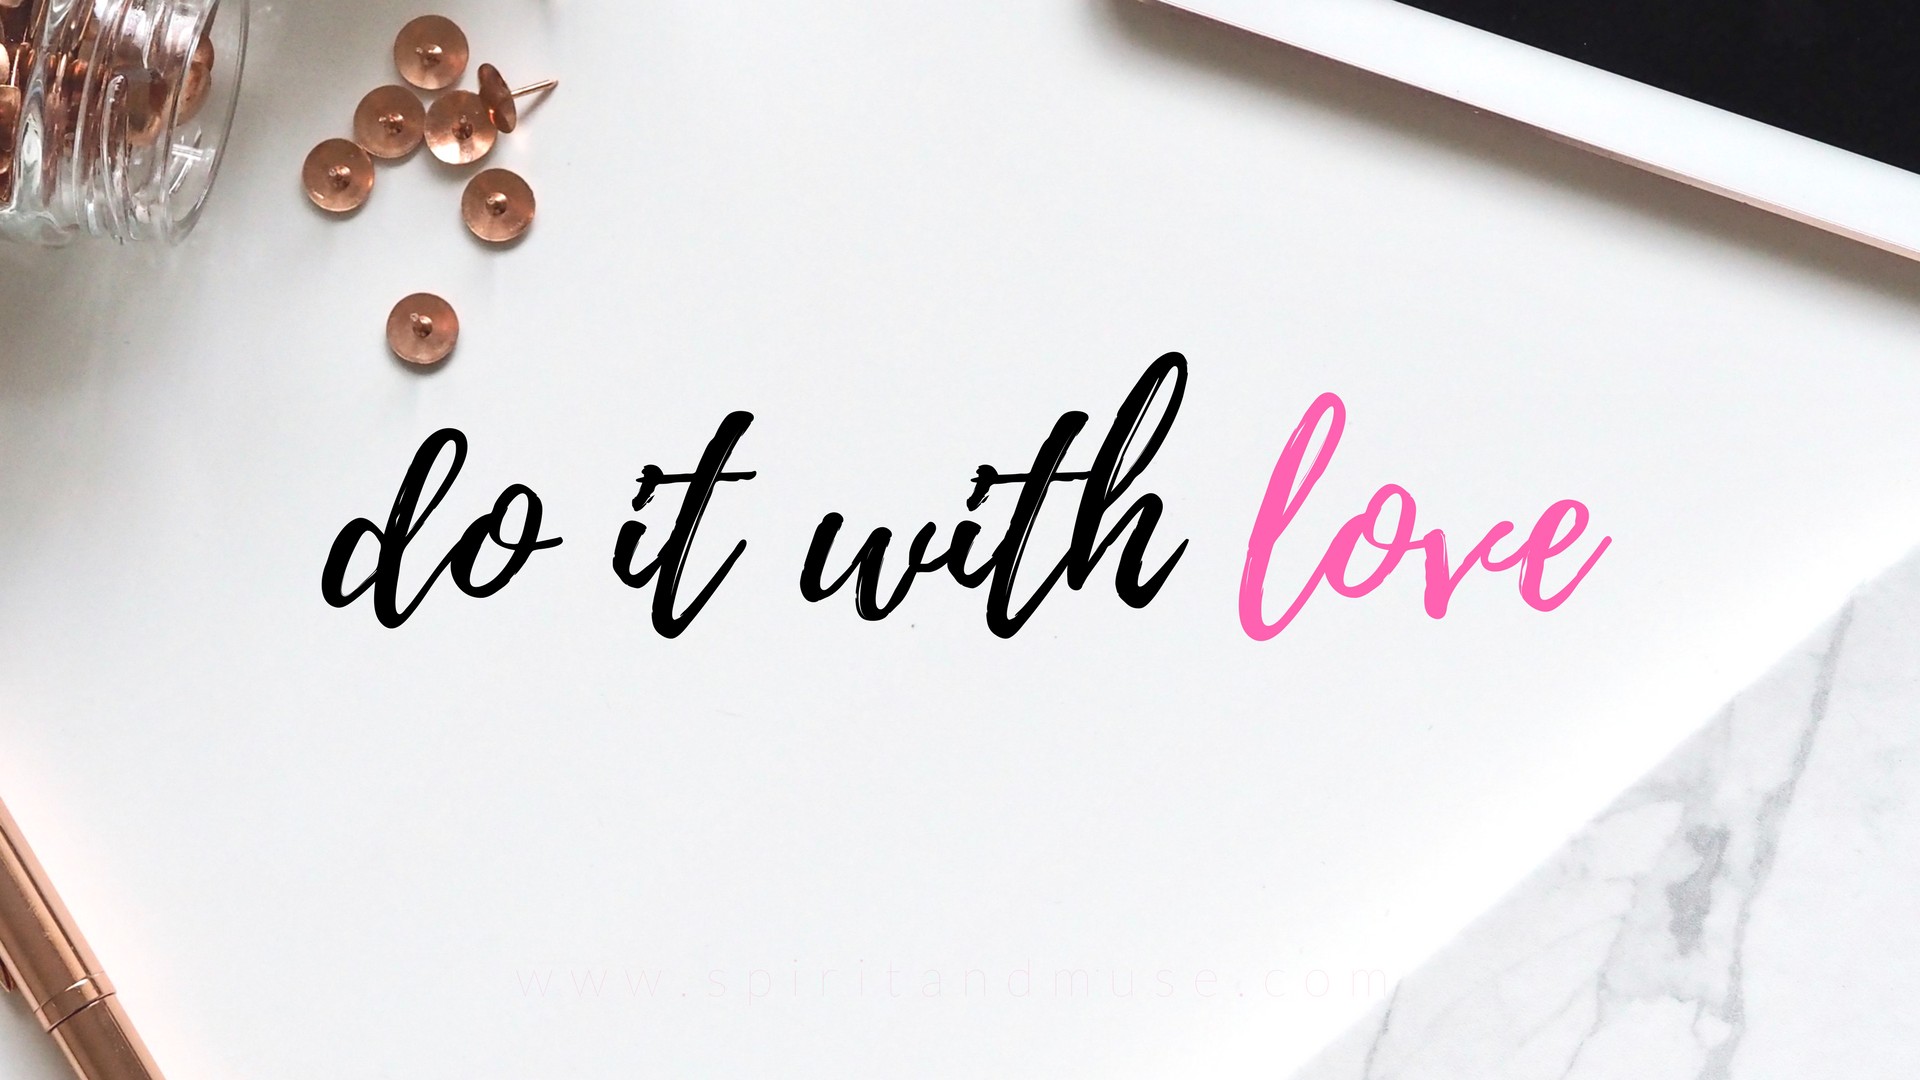 girl boss - do it with love - free desktop wallpaper